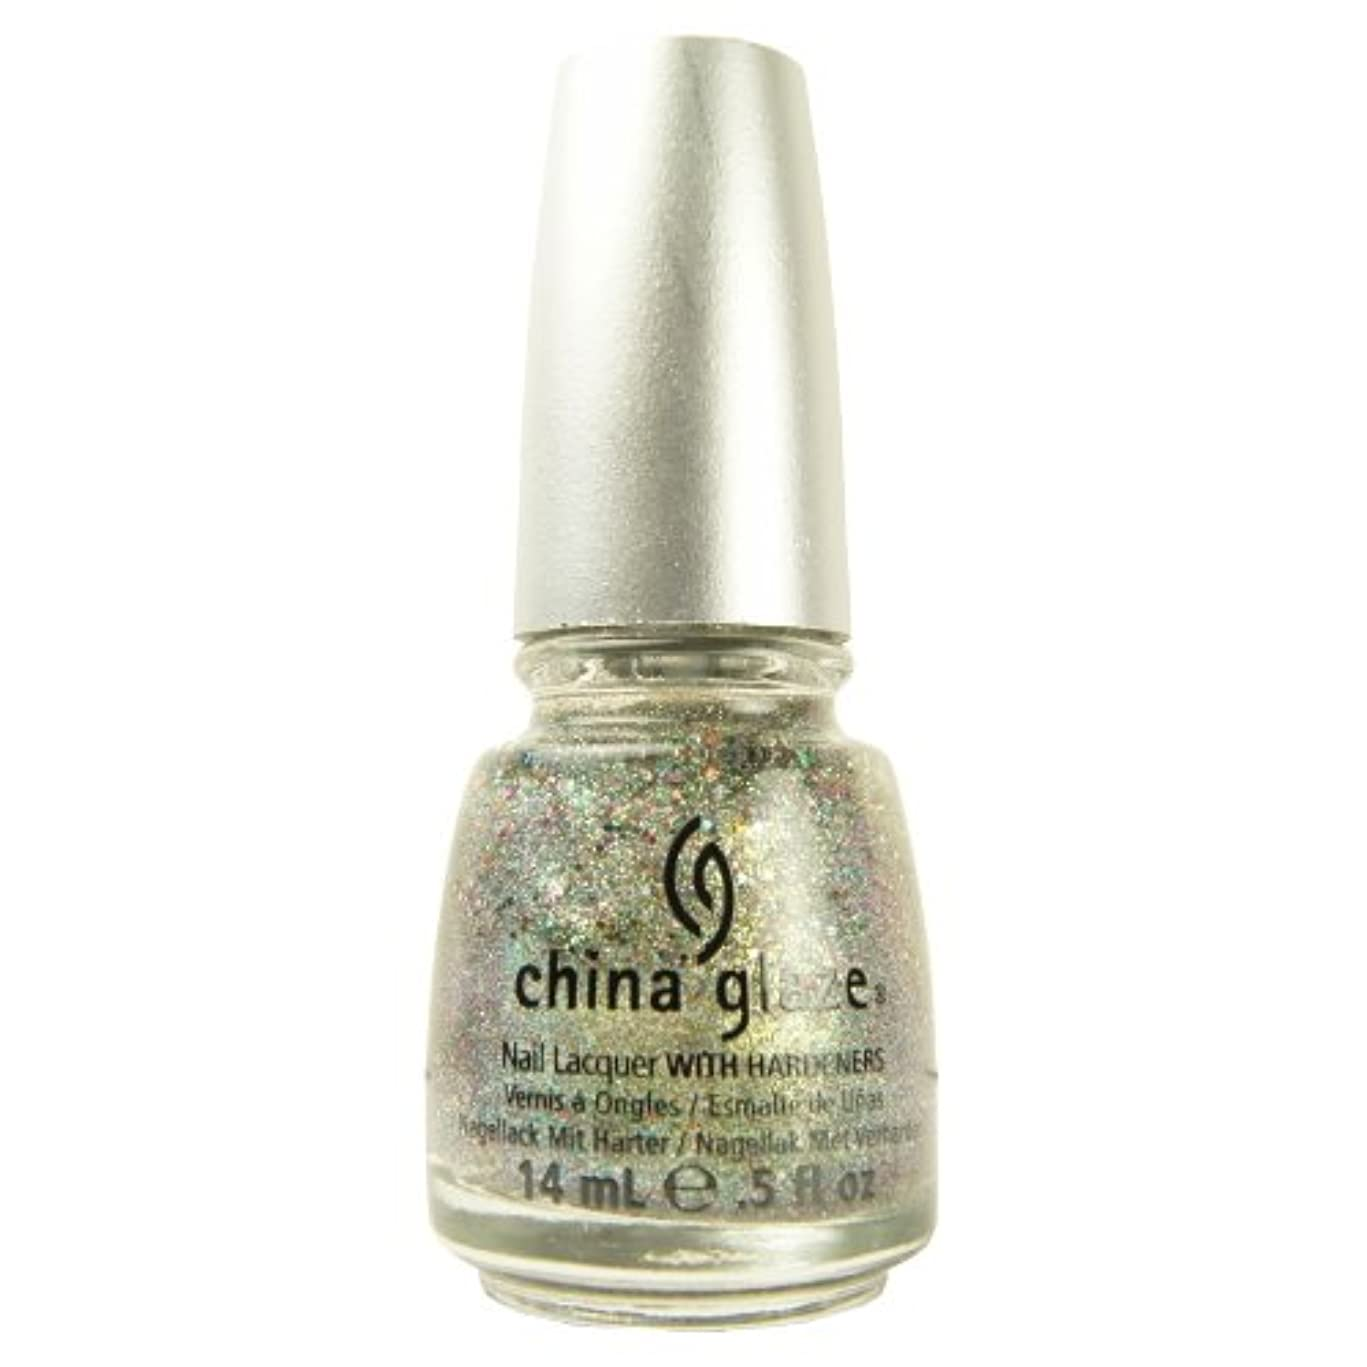 ソフトウェア薄暗い編集者(6 Pack) CHINA GLAZE Glitter Nail Lacquer with Nail Hardner - Ray-Diant (DC) (並行輸入品)